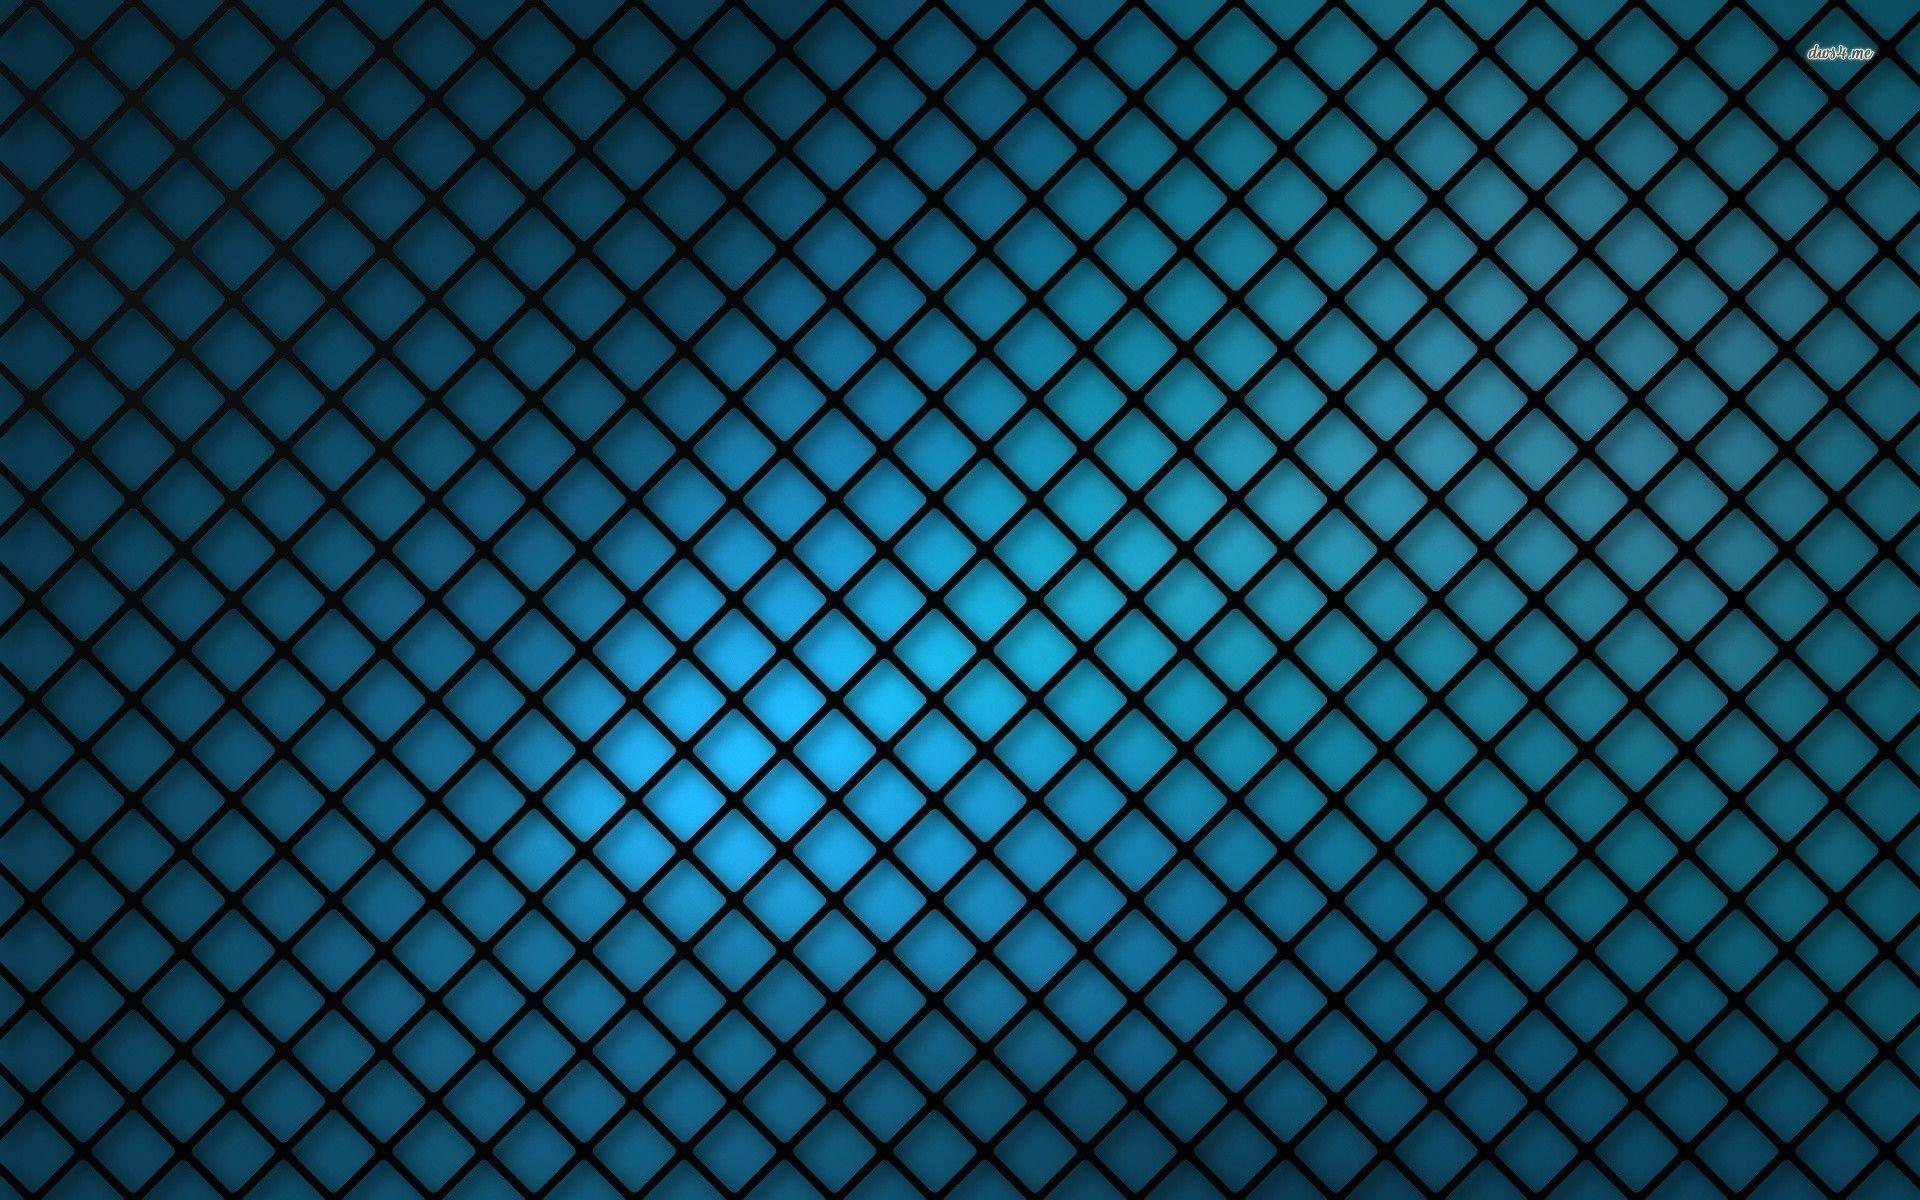 Abstract pattern wallpapers wallpaper cave for Purchase wallpaper